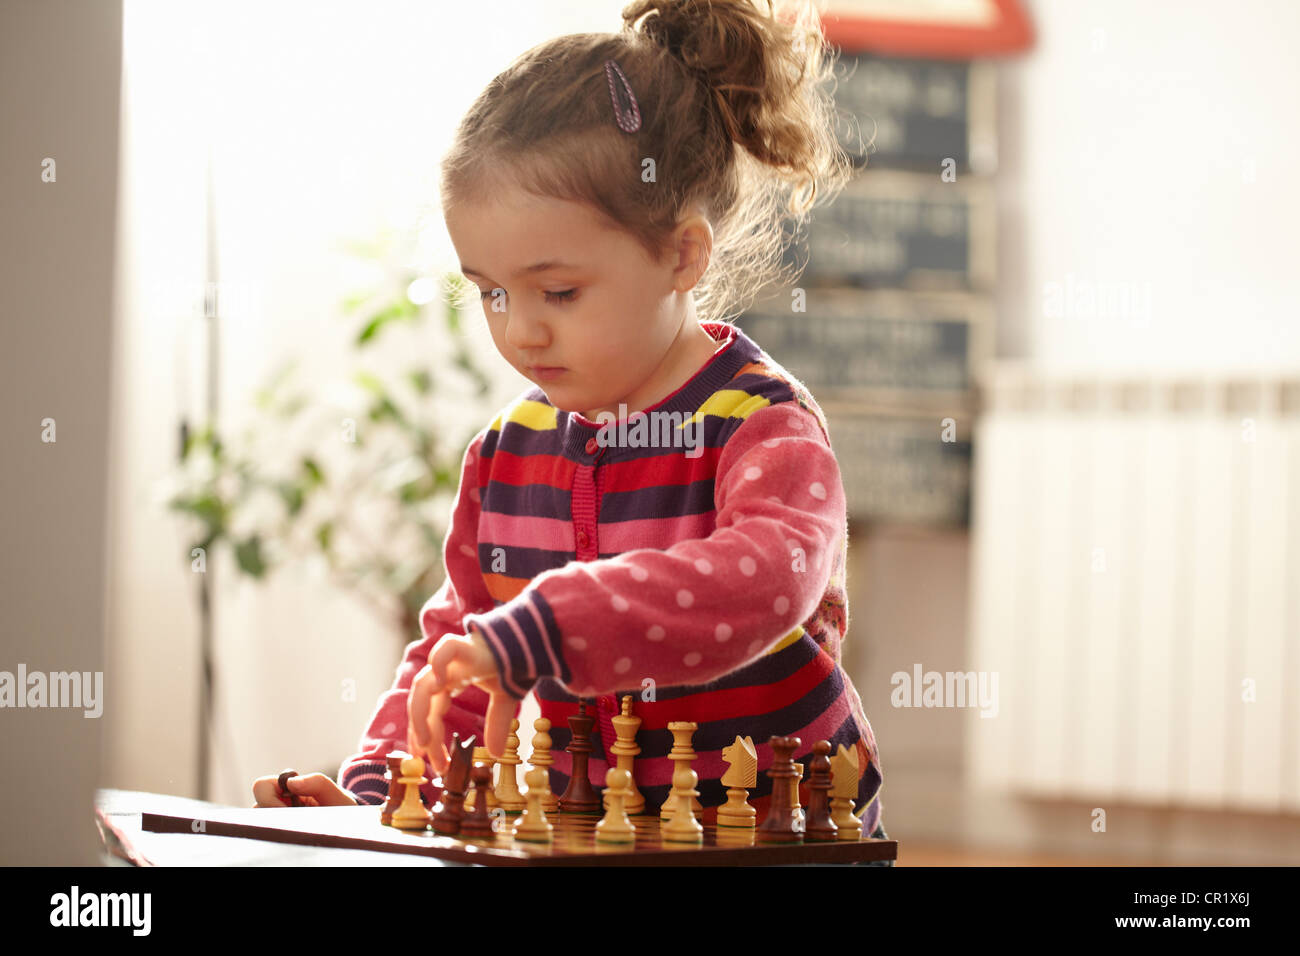 Girl playing chess indoors - Stock Image